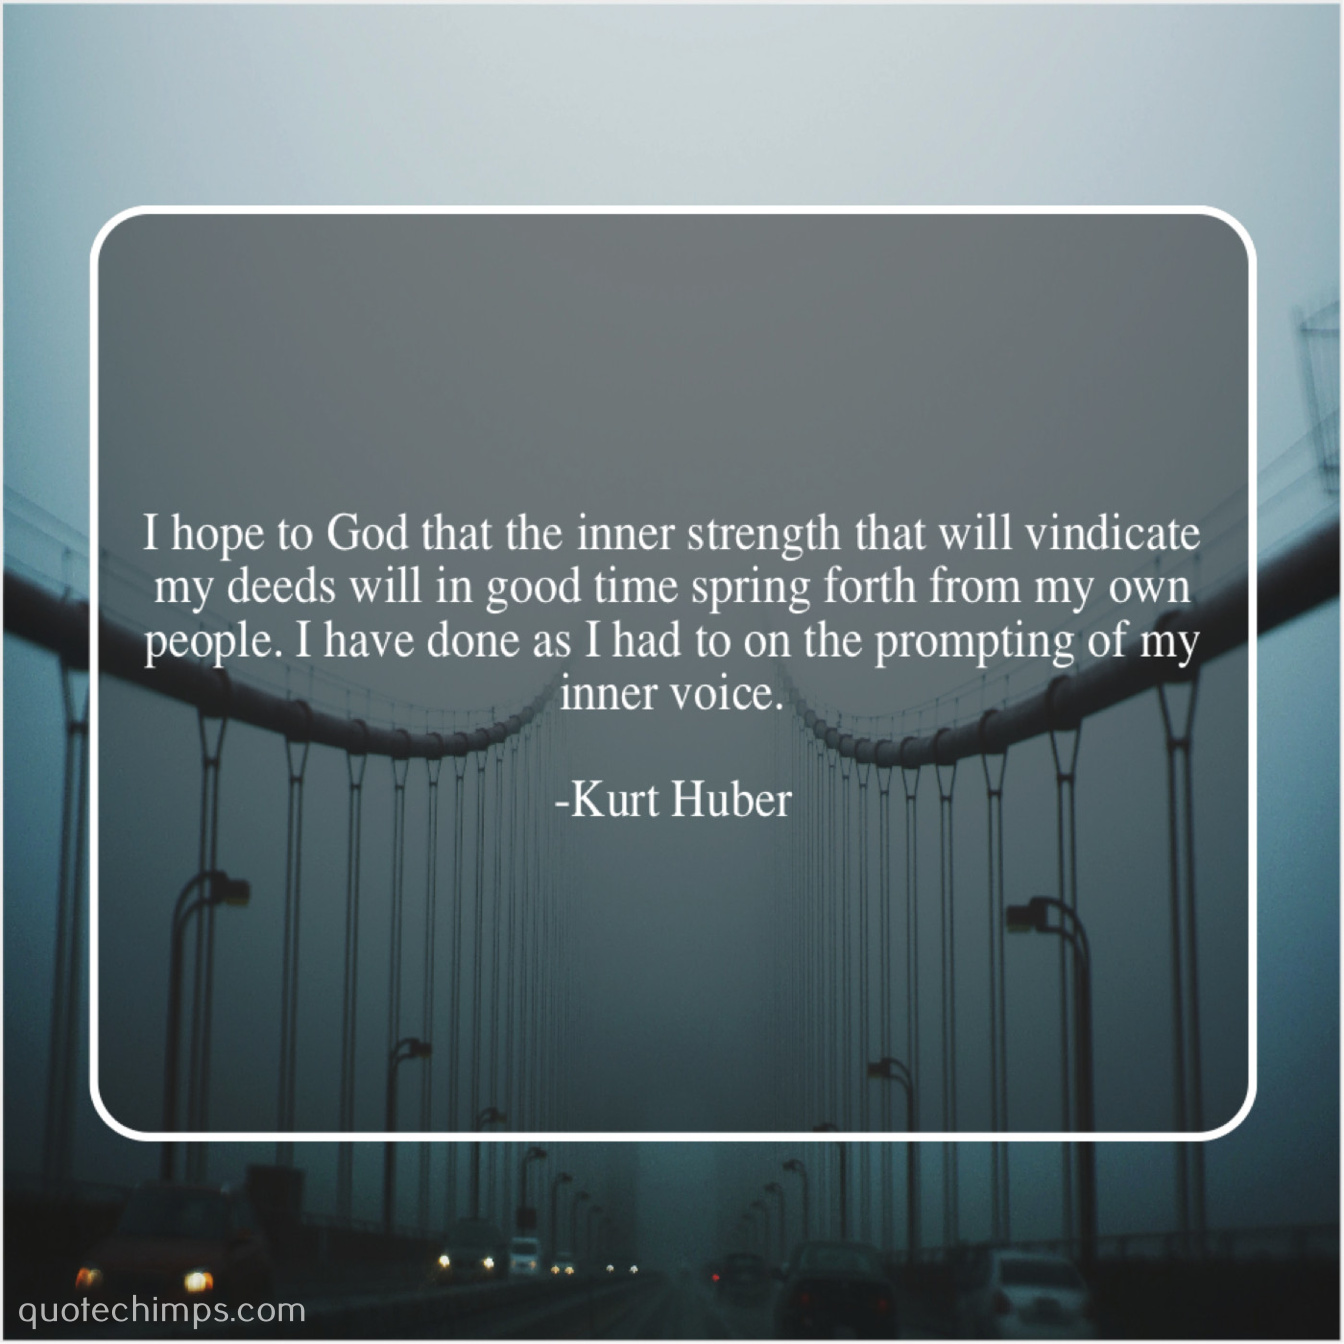 Kurt Huber – I hope to God that… |